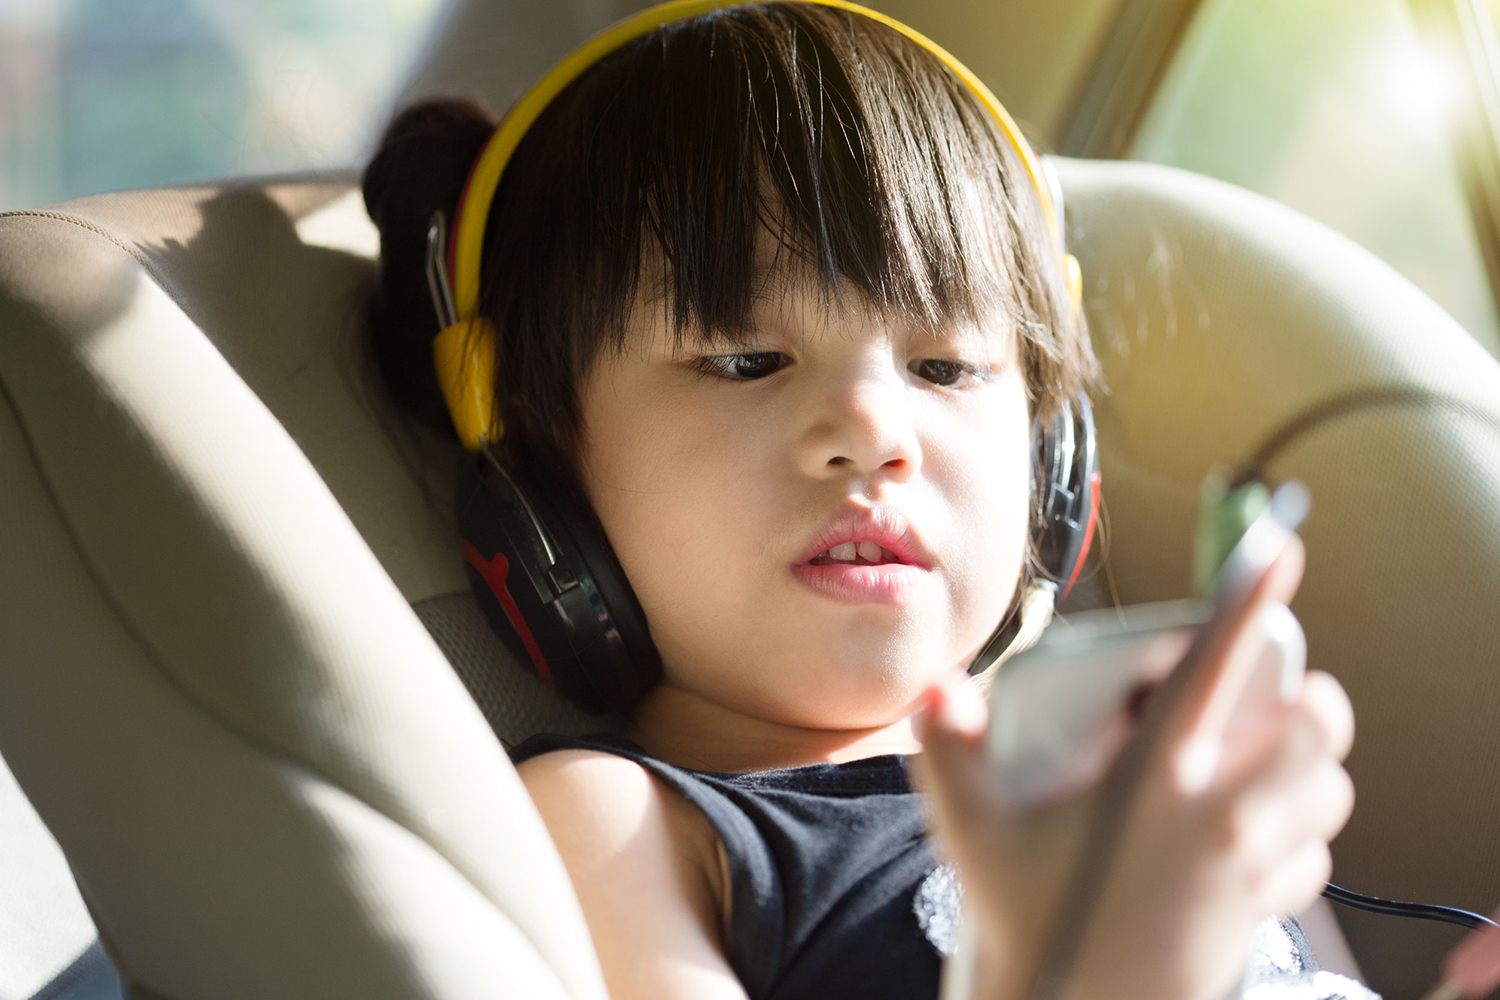 Young boy in car seat listens to a program on his mobile phone.